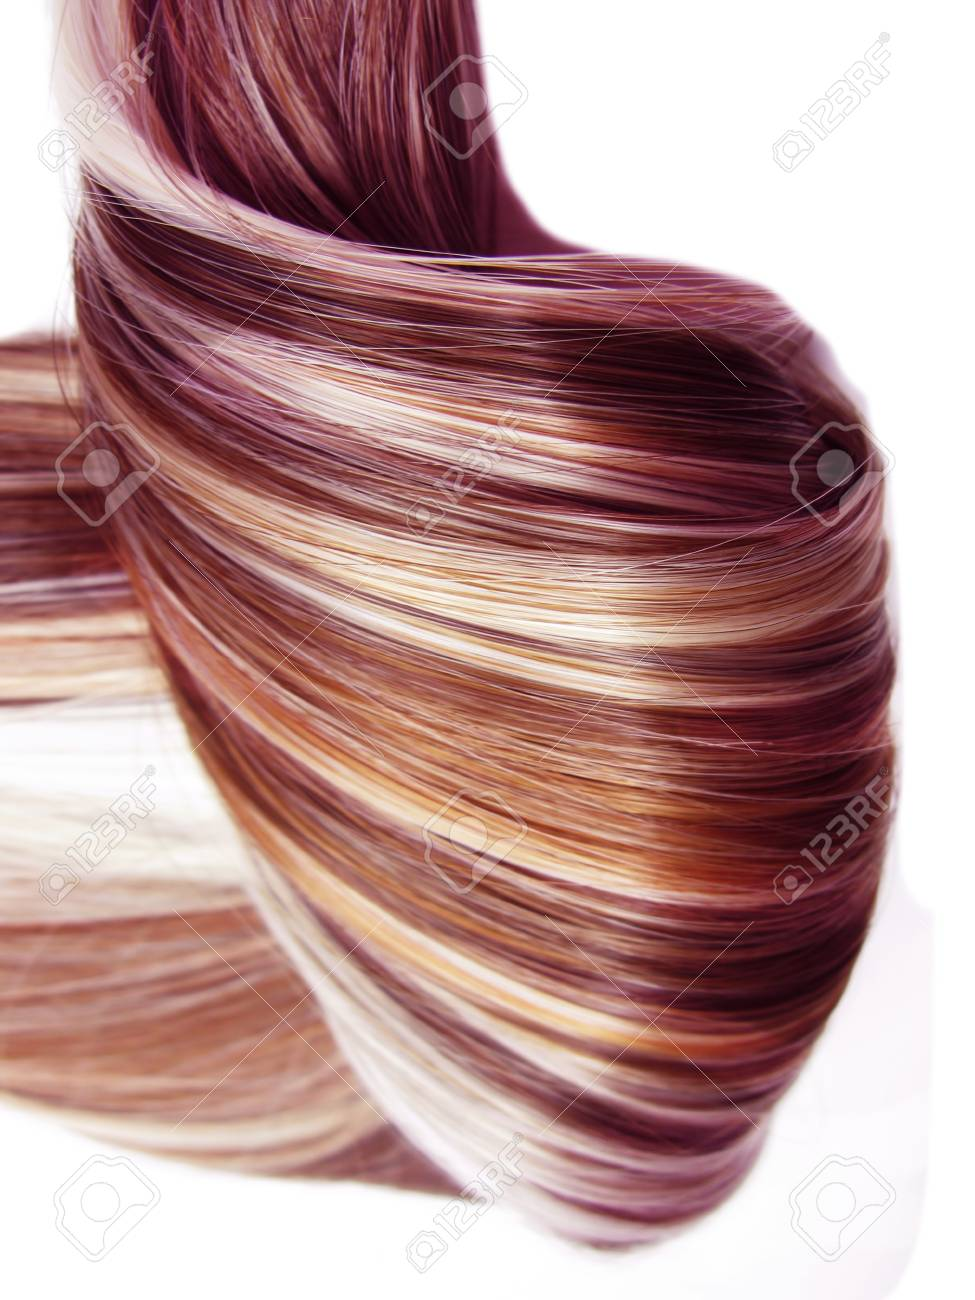 highlight hair texture abstract background Stock Photo - 19378081